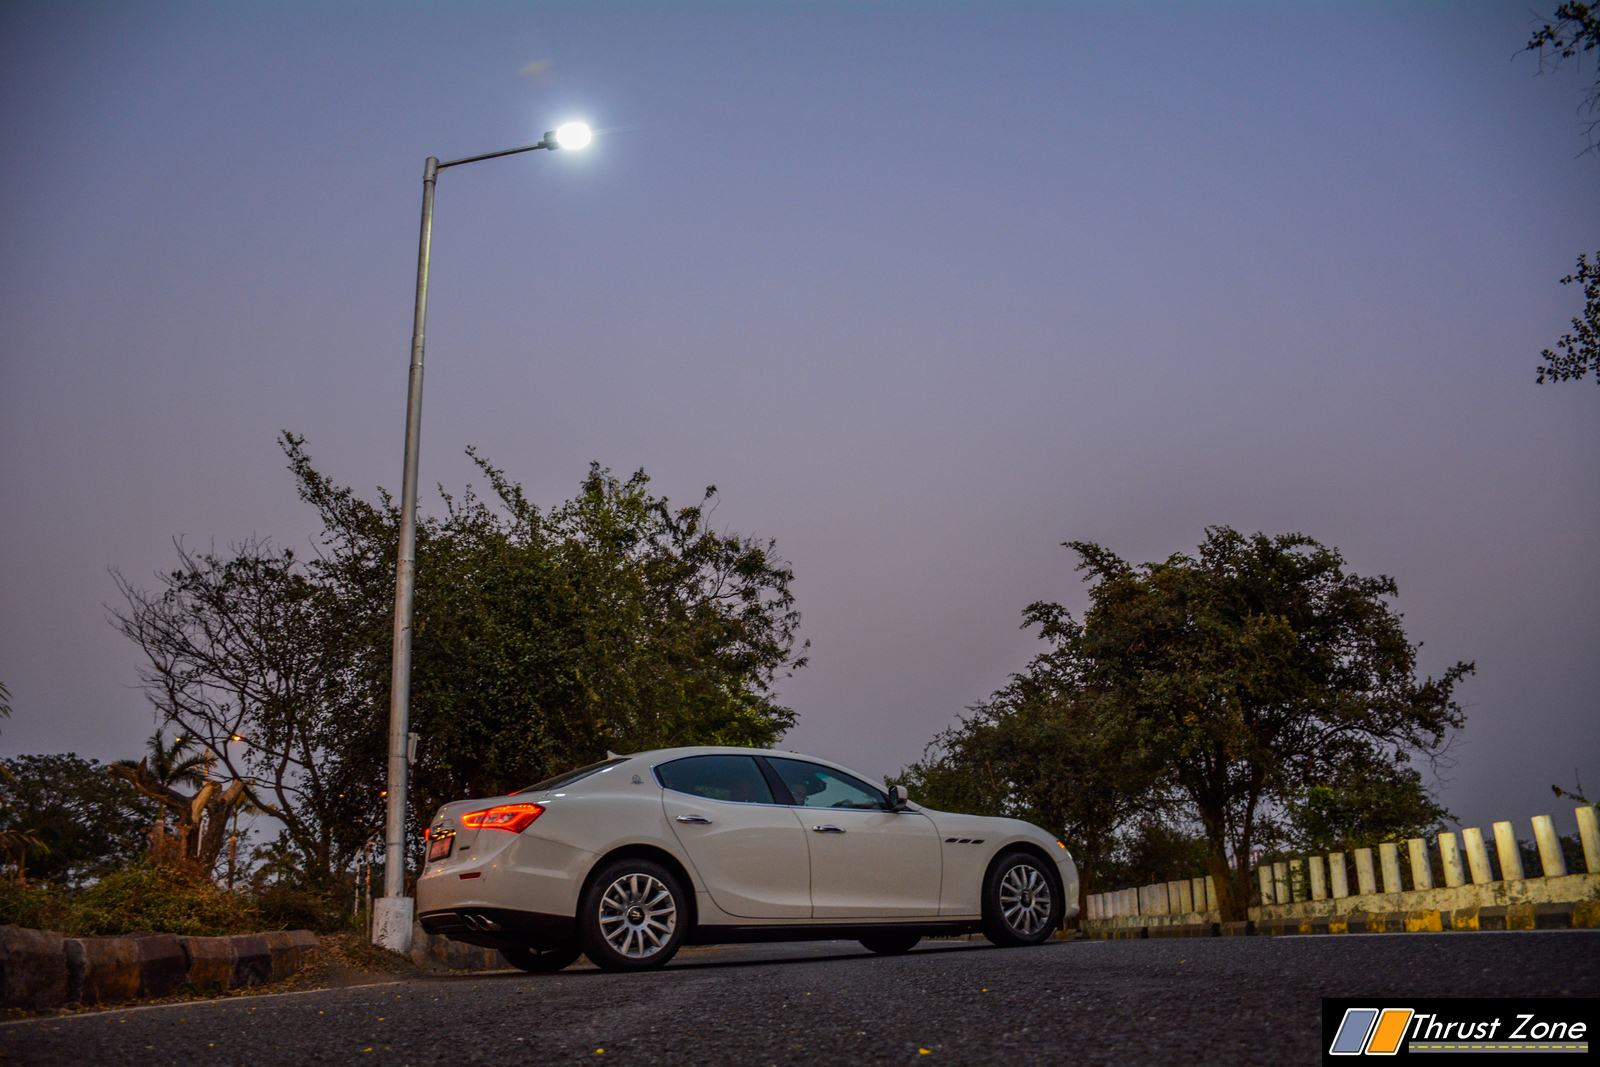 https://www.thrustzone.com/wp-content/uploads/2018/02/Maserati-Ghibli-India-diesel-review-30.jpg